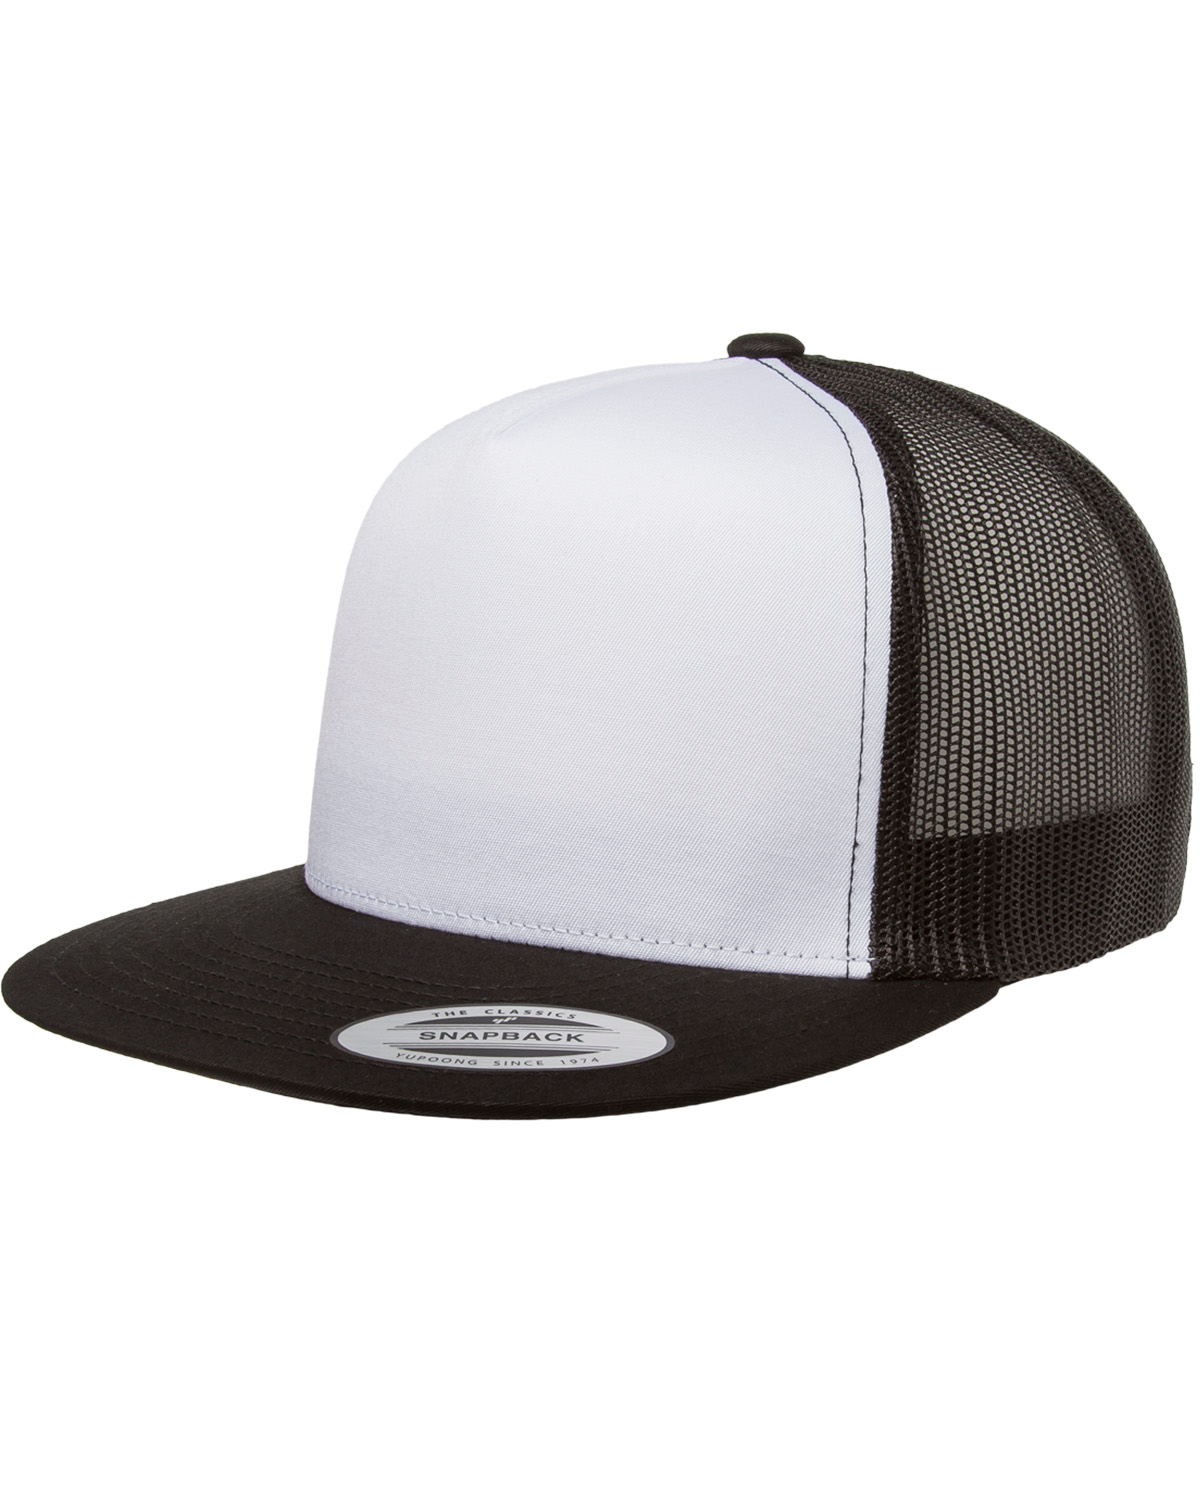 Yupoong 6006W - Adult Classic Trucker with White Front Panel Cap  4.38 -  Headwear 8c9a4993901